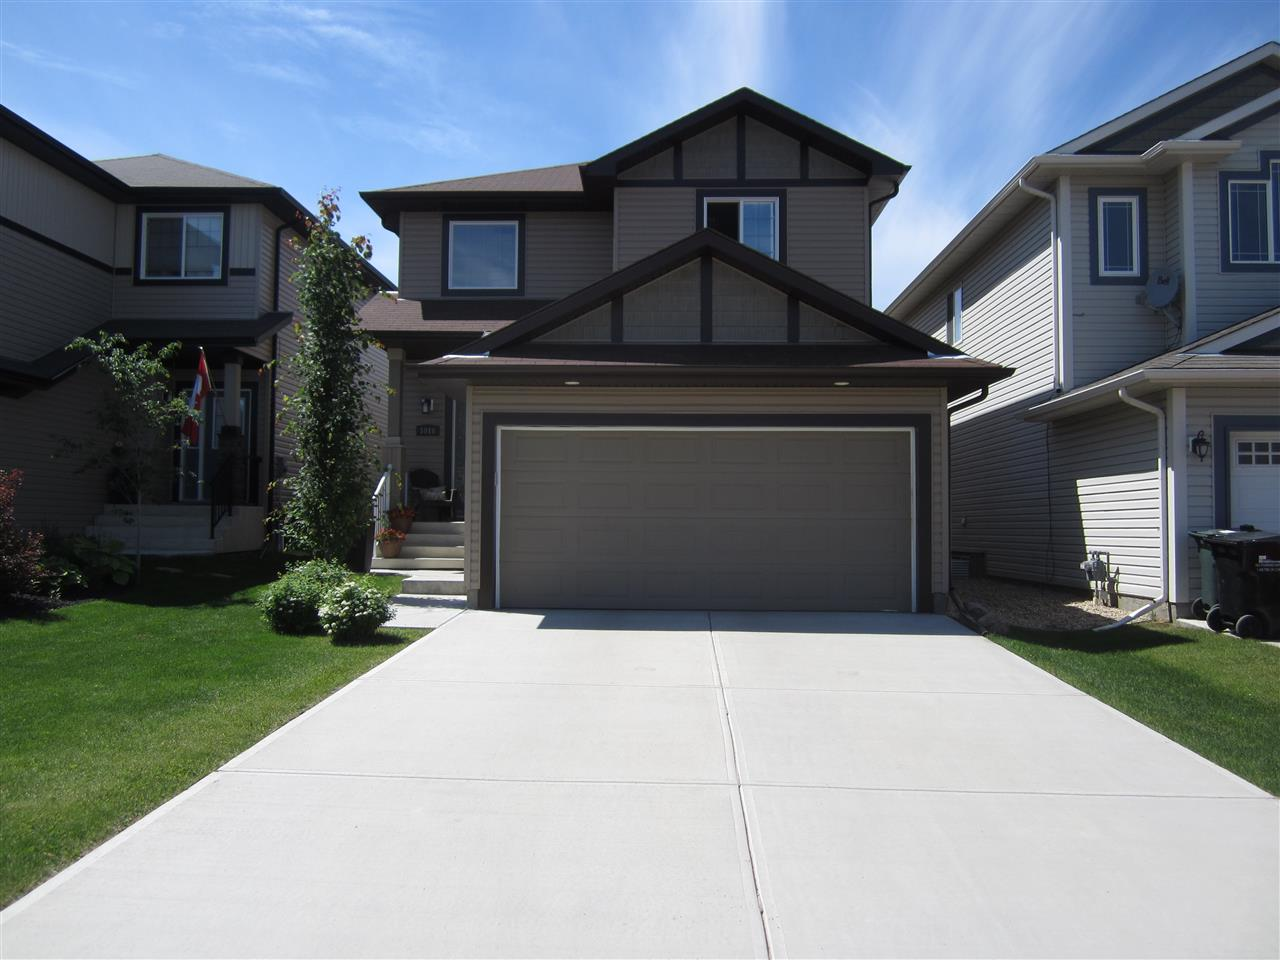 Main Photo: 1016 FOXWOOD Crescent: Sherwood Park House for sale : MLS(r) # E4068805